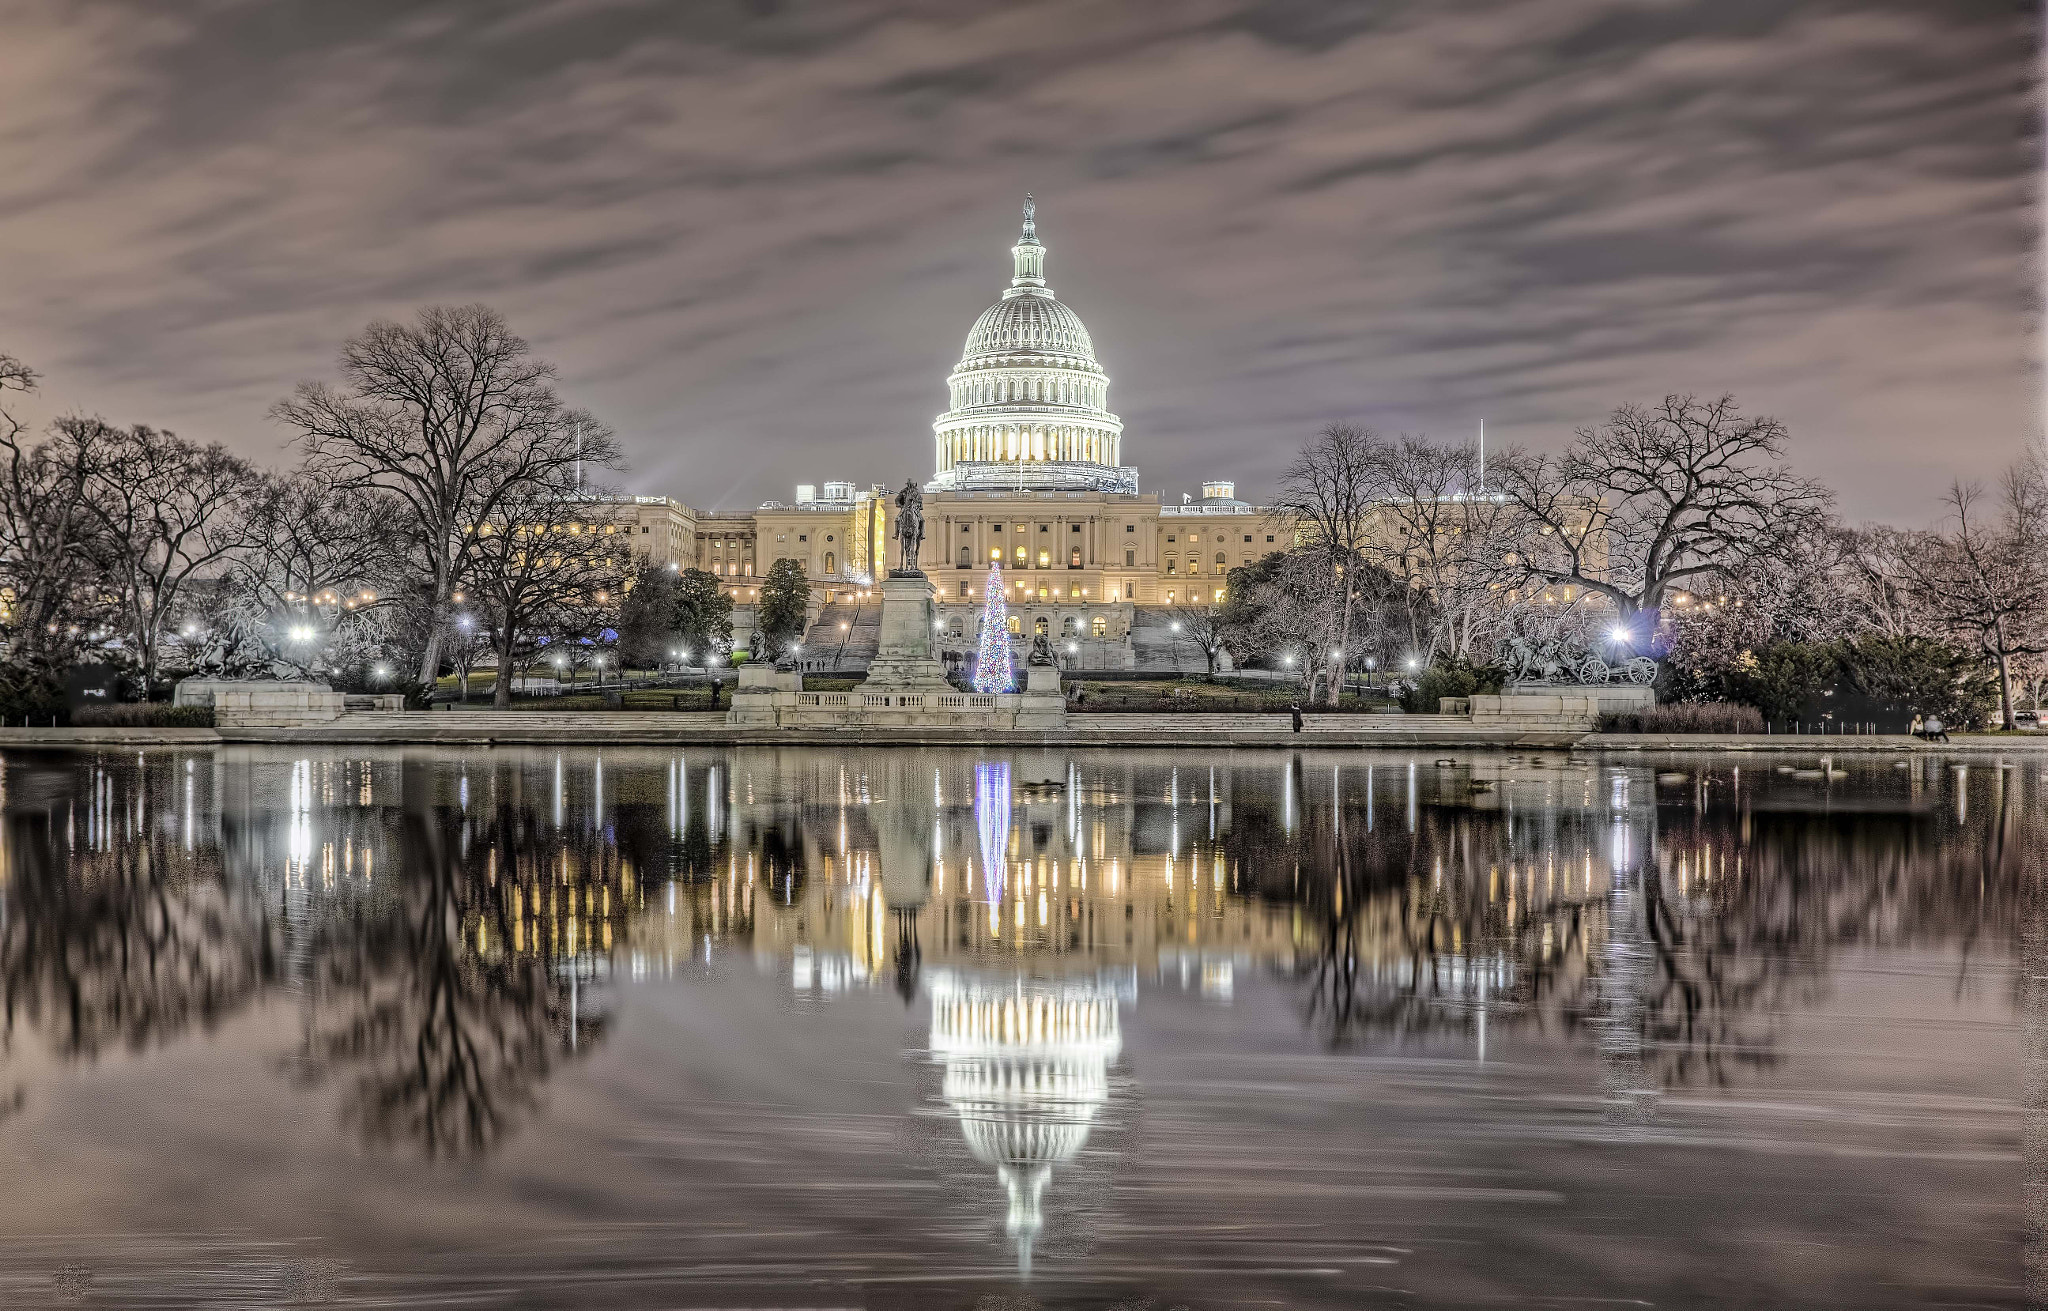 Photograph Capitol Night by Robert McMillan on 500px